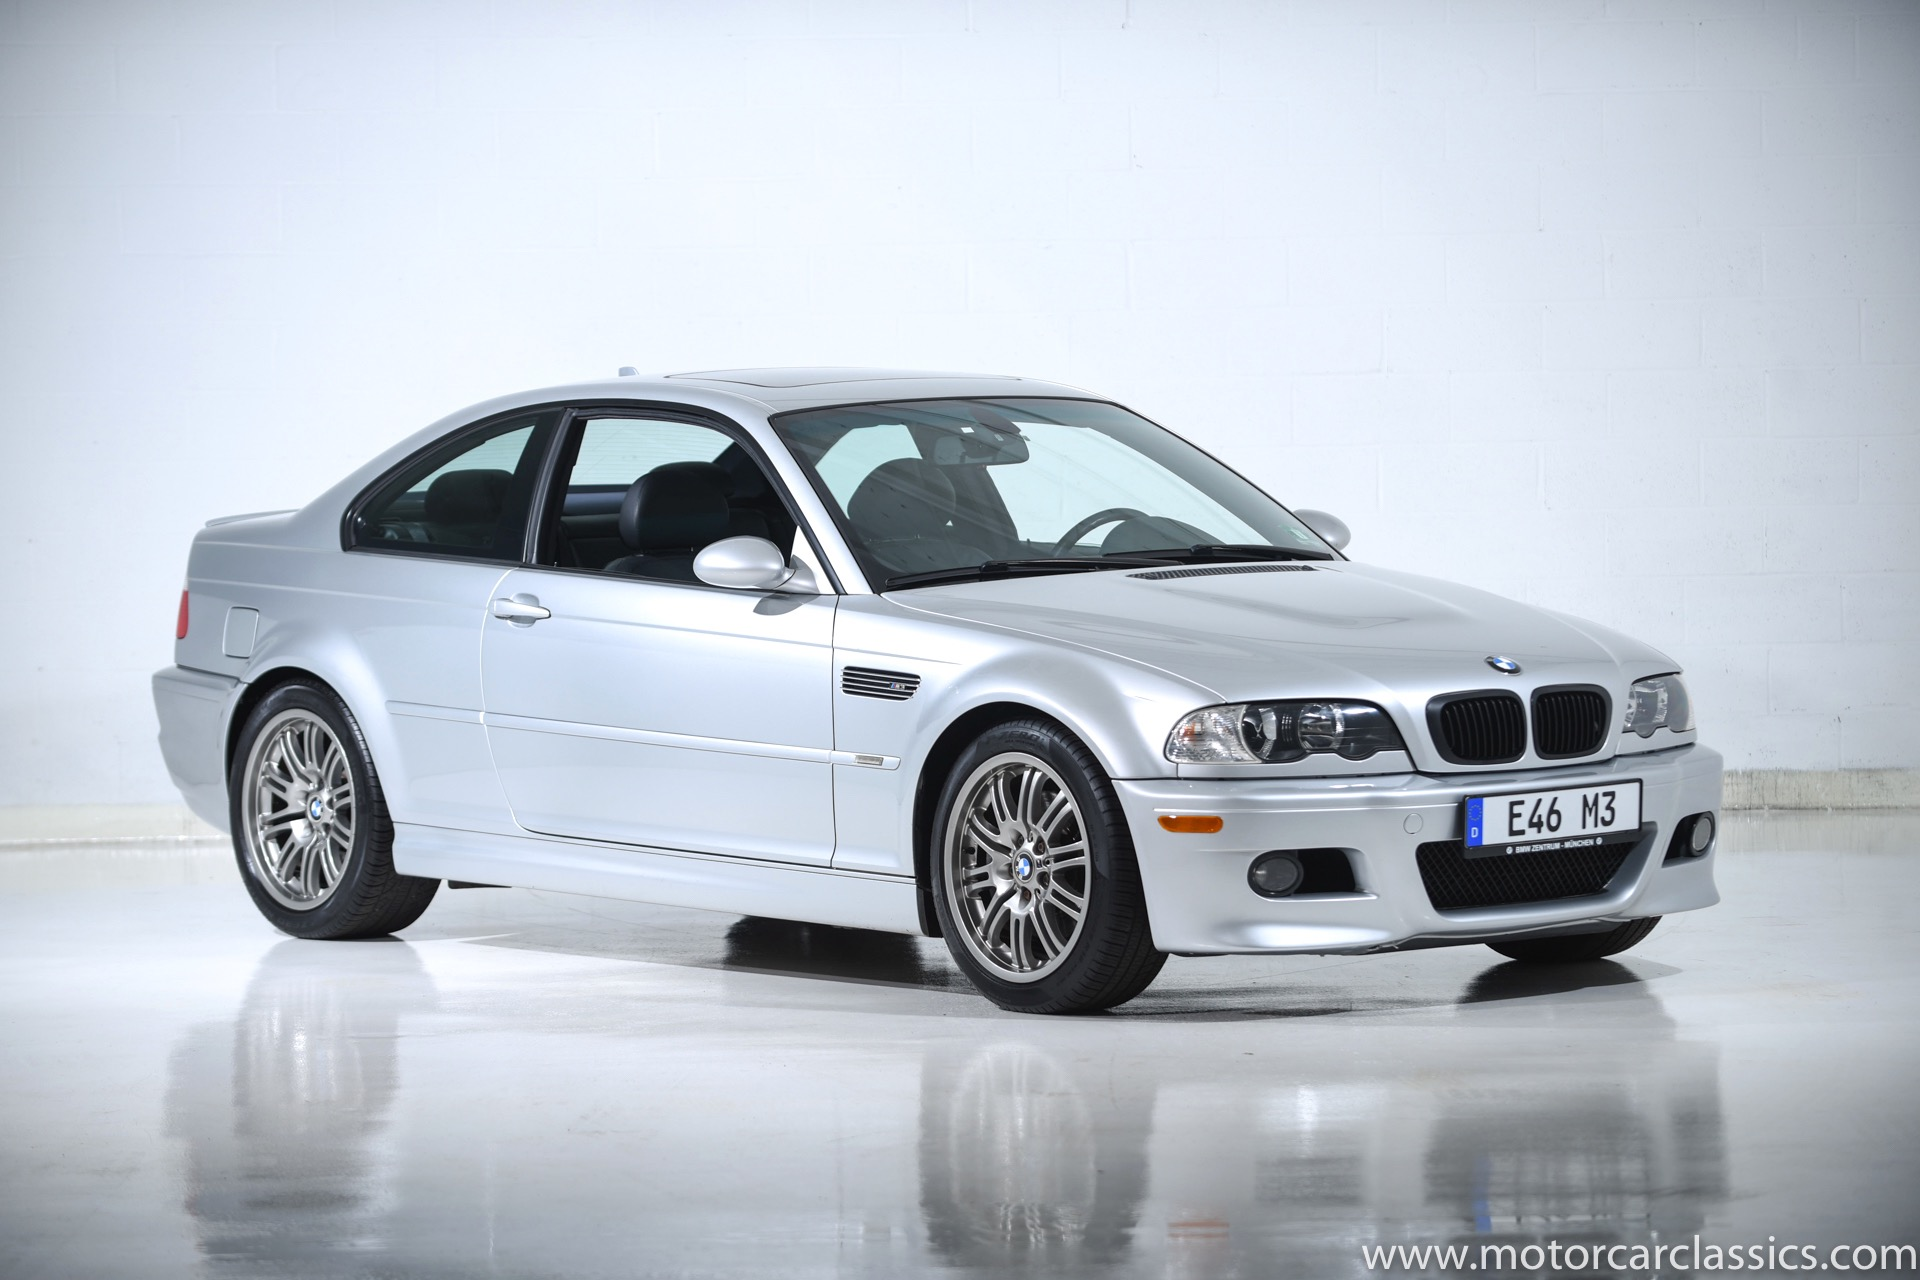 Used 2005 Bmw M3 For Sale 27 900 Motorcar Classics Stock 1334